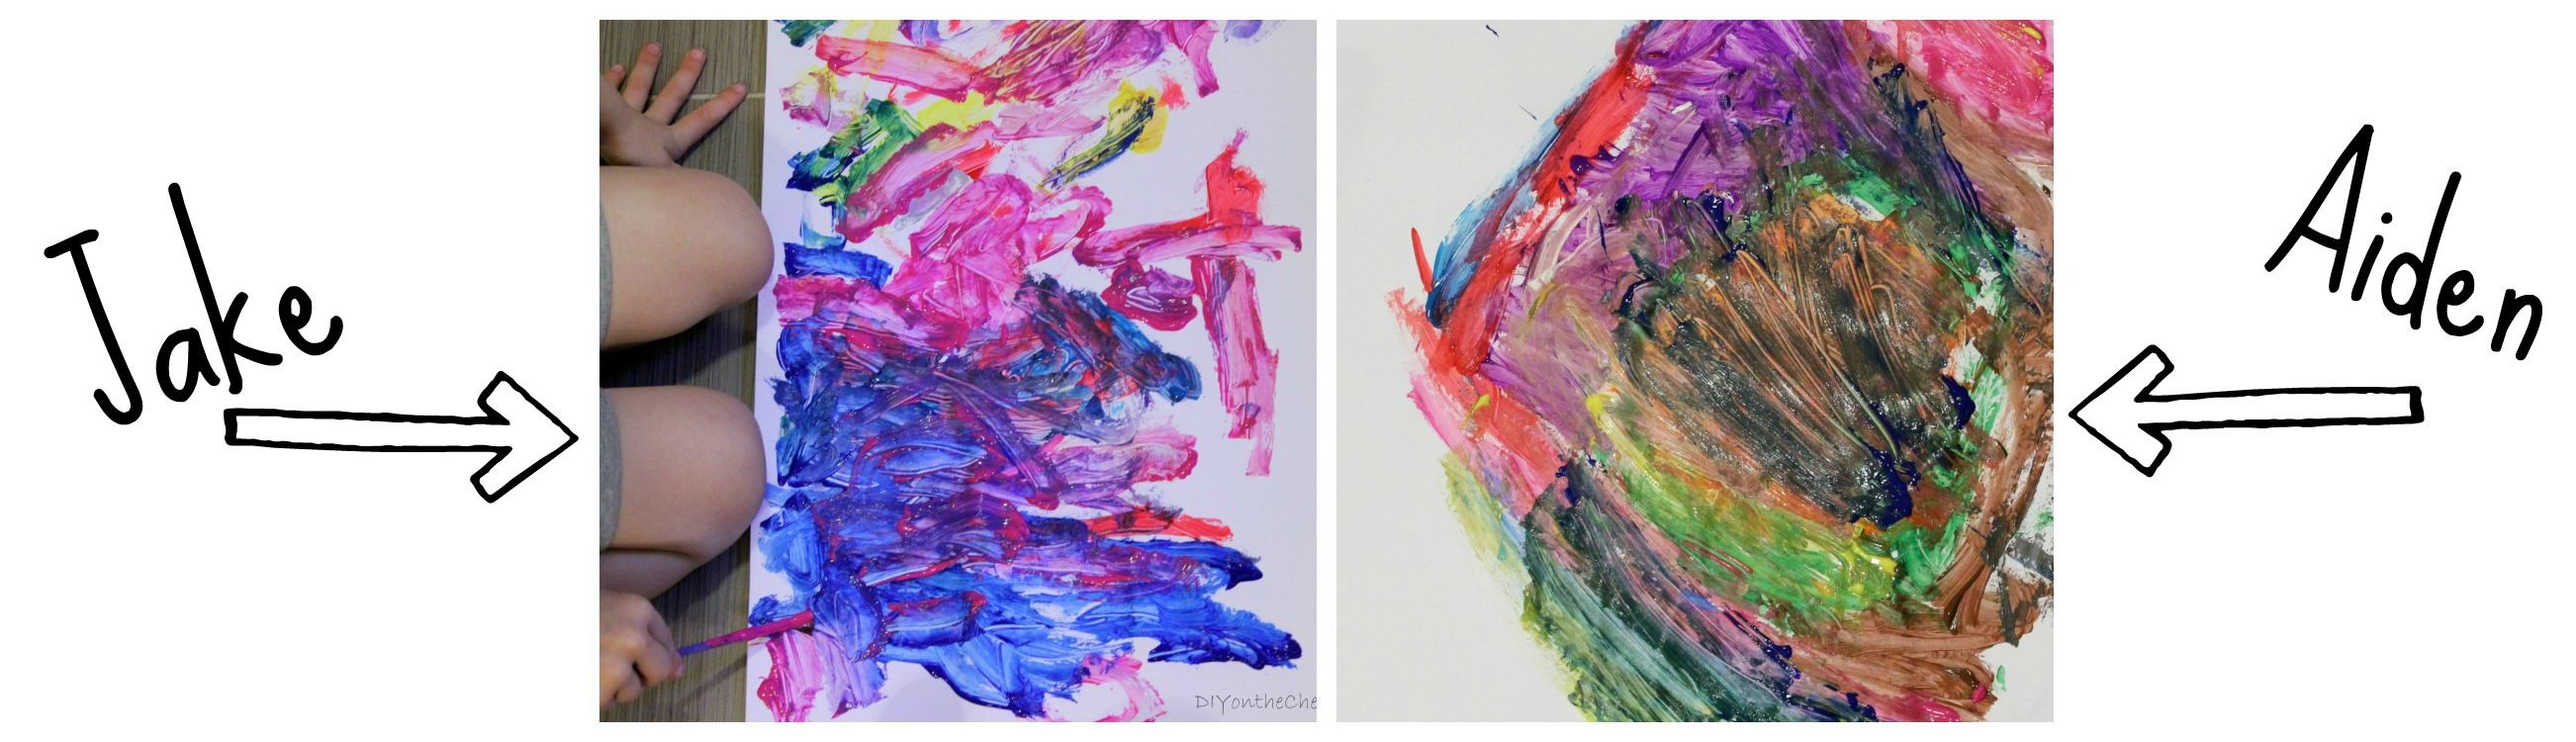 Kids' Art: Abstract Painting